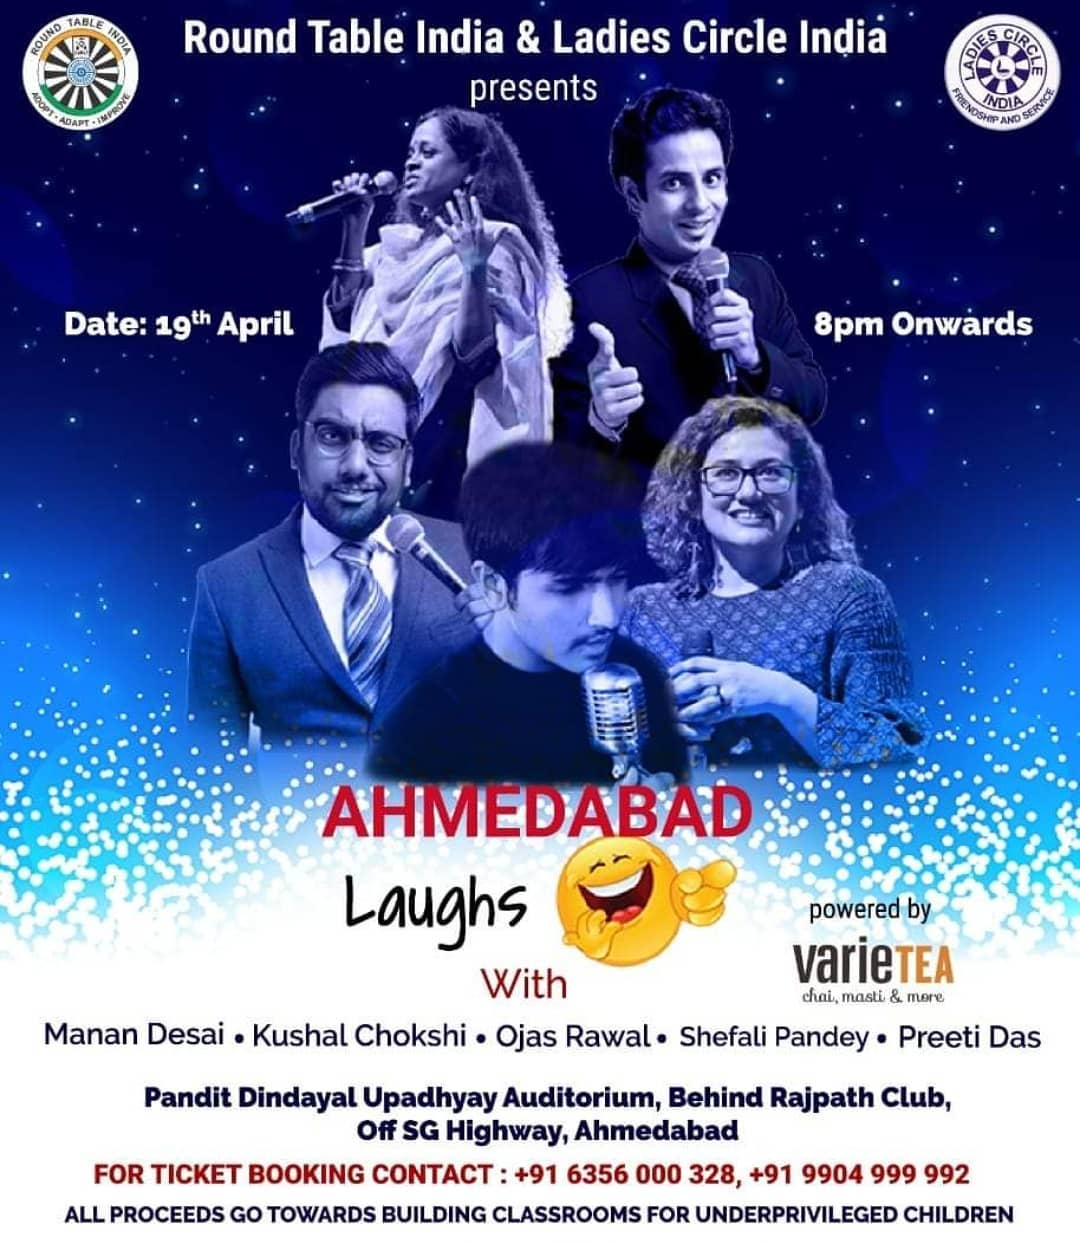 Ojas Rawal,  Ahmedabad, gujarat, show, comedy, tonight, bethere, charity, india, gujju, gujarati, OjasRawal, ojas, comedian, actor, entertainment, showbiz, onstage, live, amdavad, event, stageshow, comedians, standup, standupcomedians, standupcomedy, funny, letsdothis, seeyoutonight, dontmissthis, yay